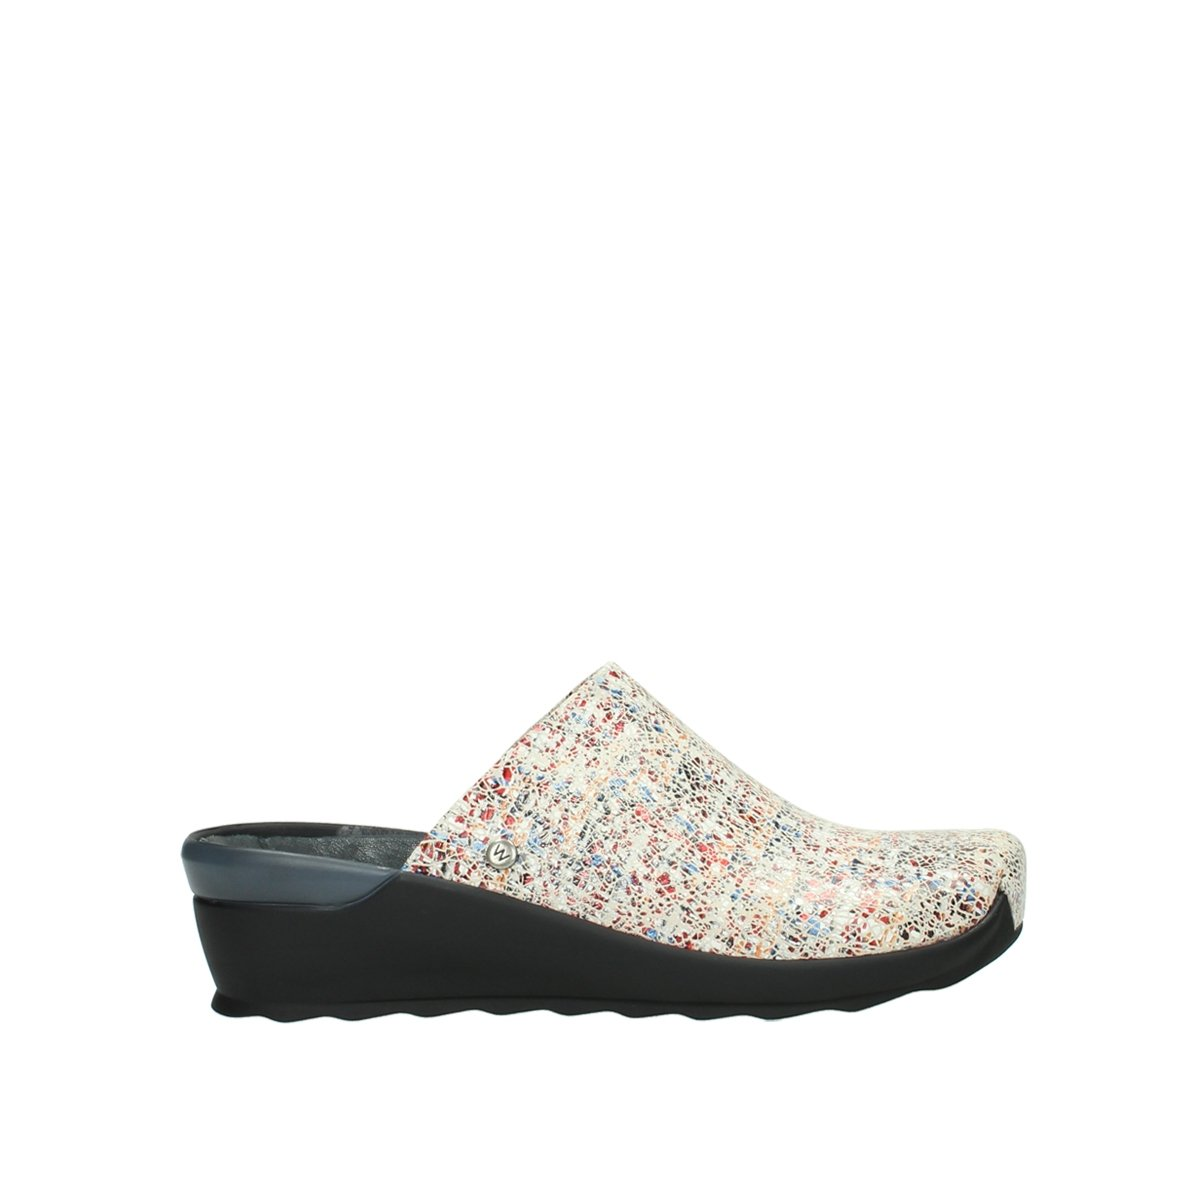 Wolky Comfort Sneakers Ewood B079MB458T 36 M EU|40912 Offwhite Multi Suede